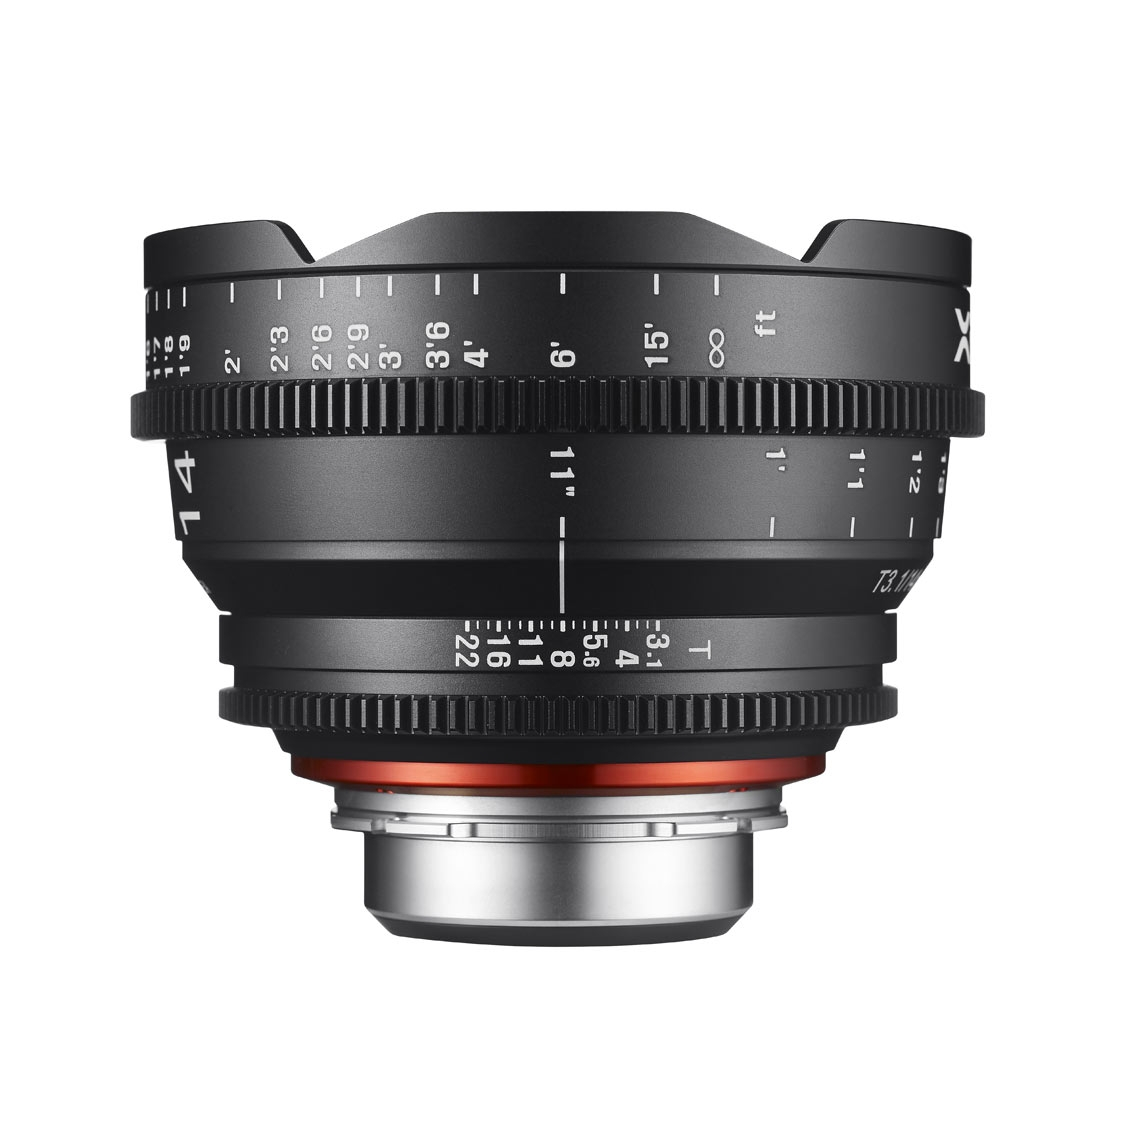 Rokinon 14mm T3.1 Xeen Professional Cine Lens for Sony E-mount